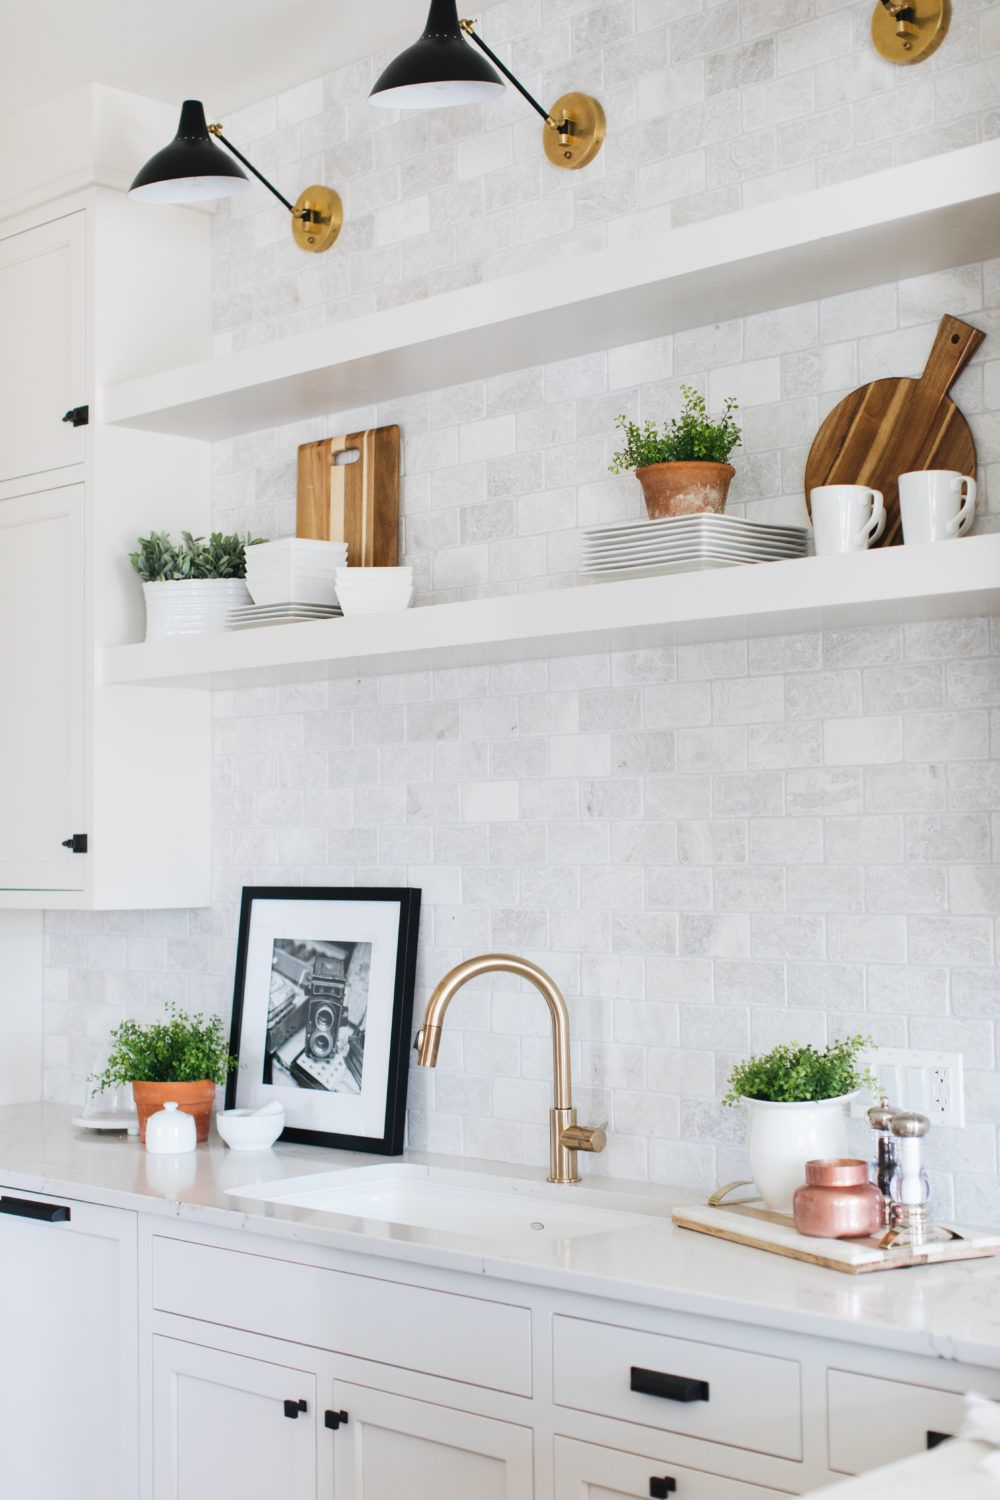 Five Elements of Hygge White kitchen floating shelves